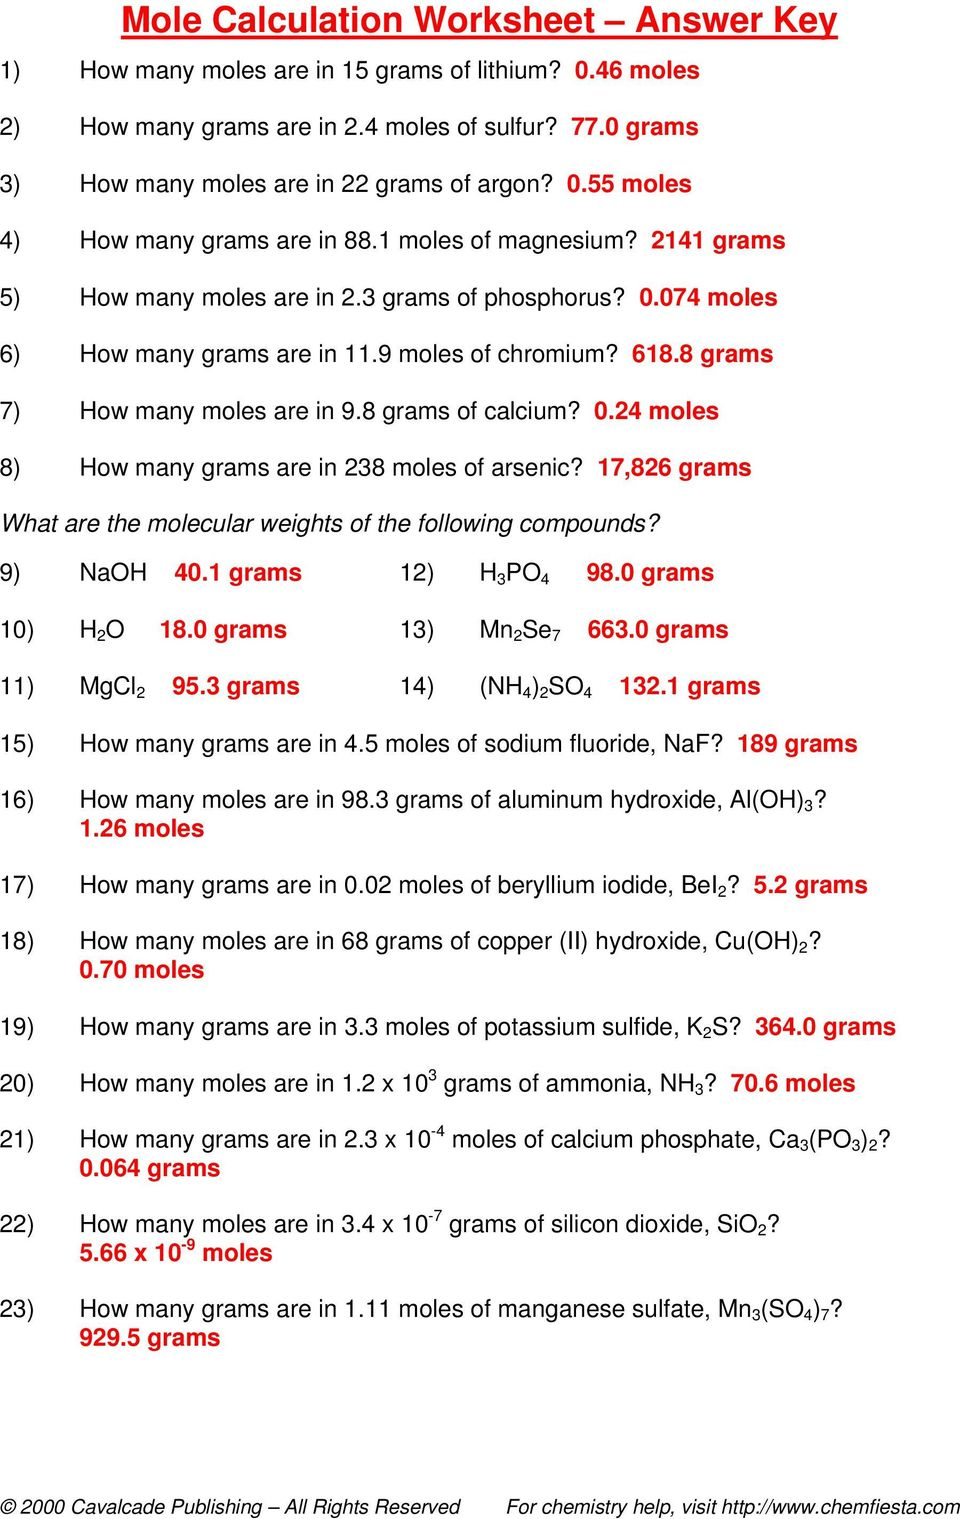 Worksheets Moles Molecules And Grams Worksheet Answer Key molecules and grams worksheet answer key 8 of calcium 0 24 moles how many are in 238 moles